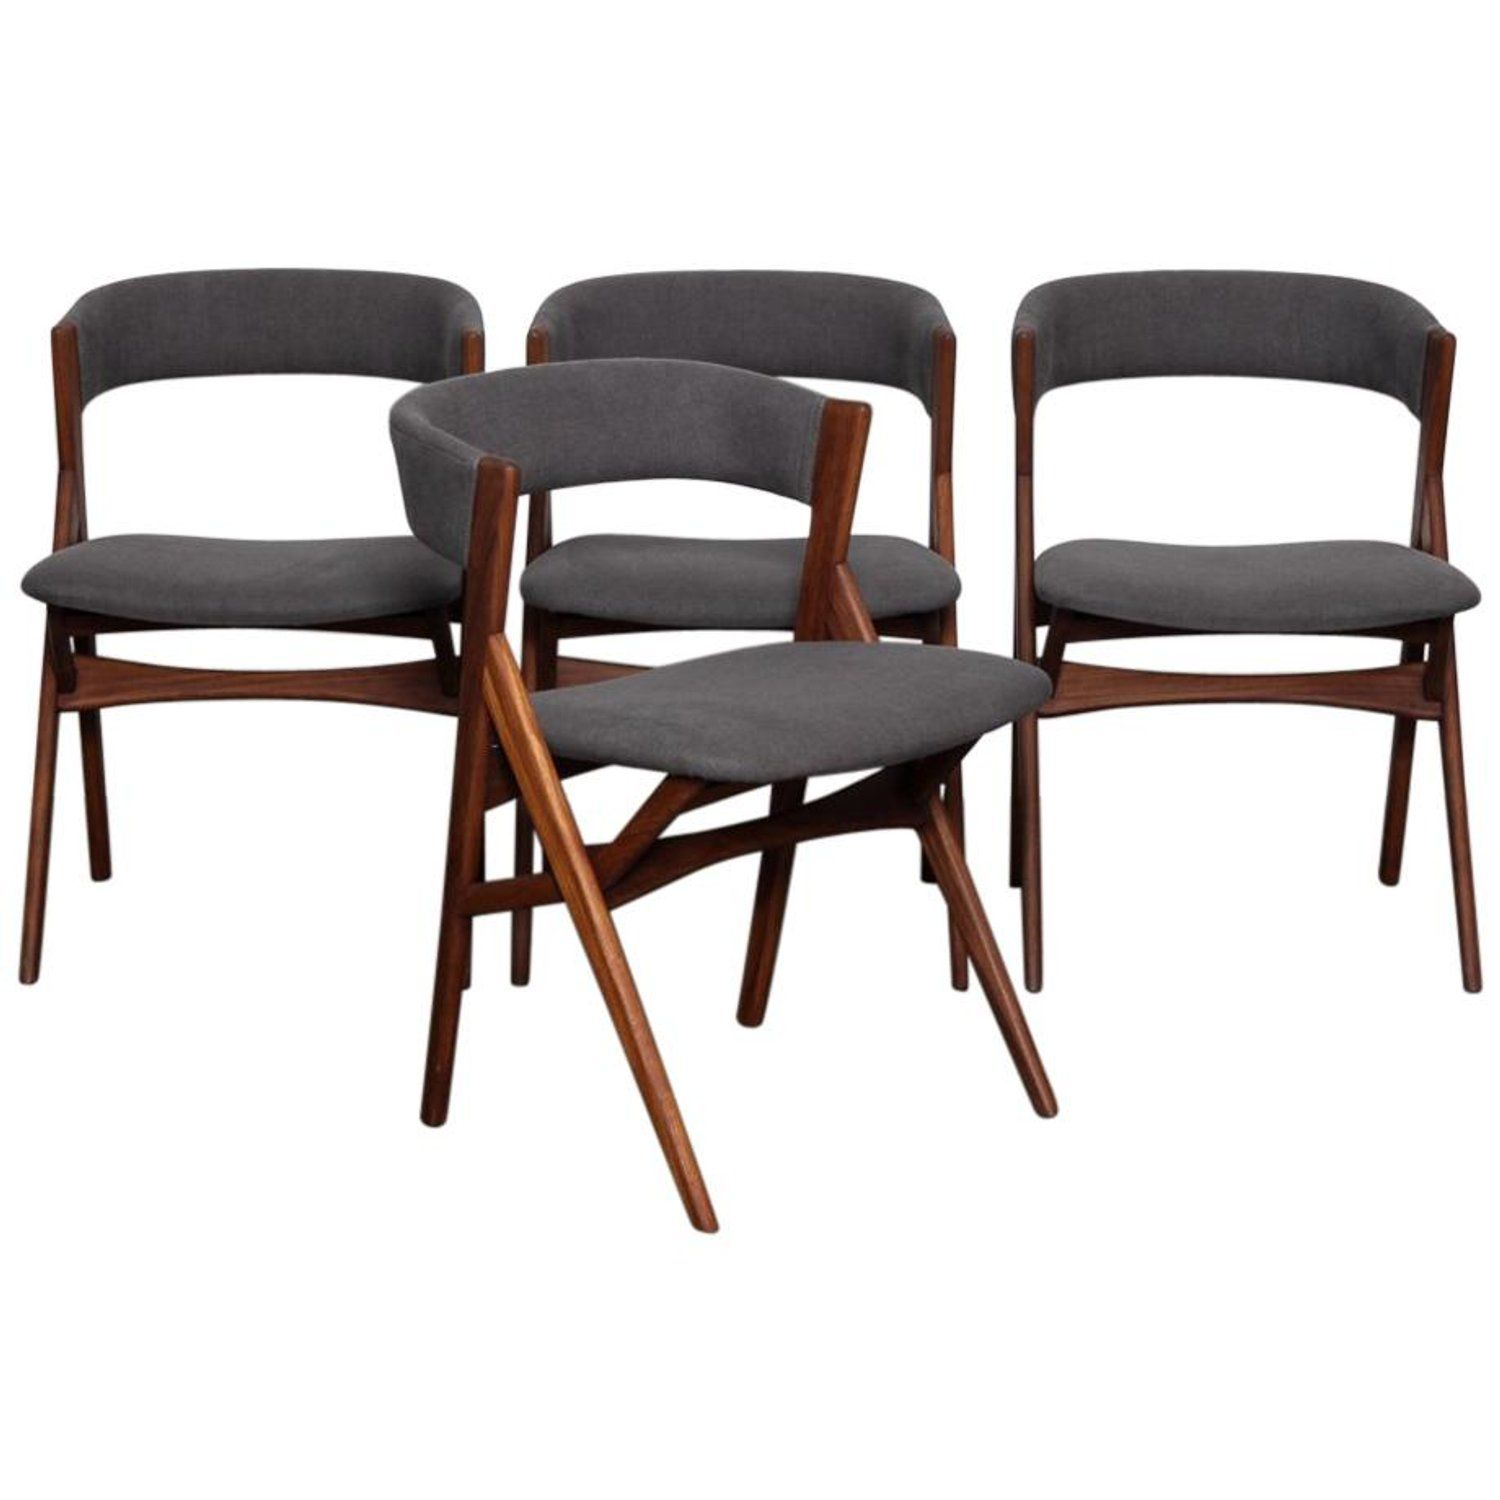 Set Of 4 Teak 1950s Curved Back Danish Dining Chairs Danish Dining Chairs Dining Chairs Teak Dining Chairs